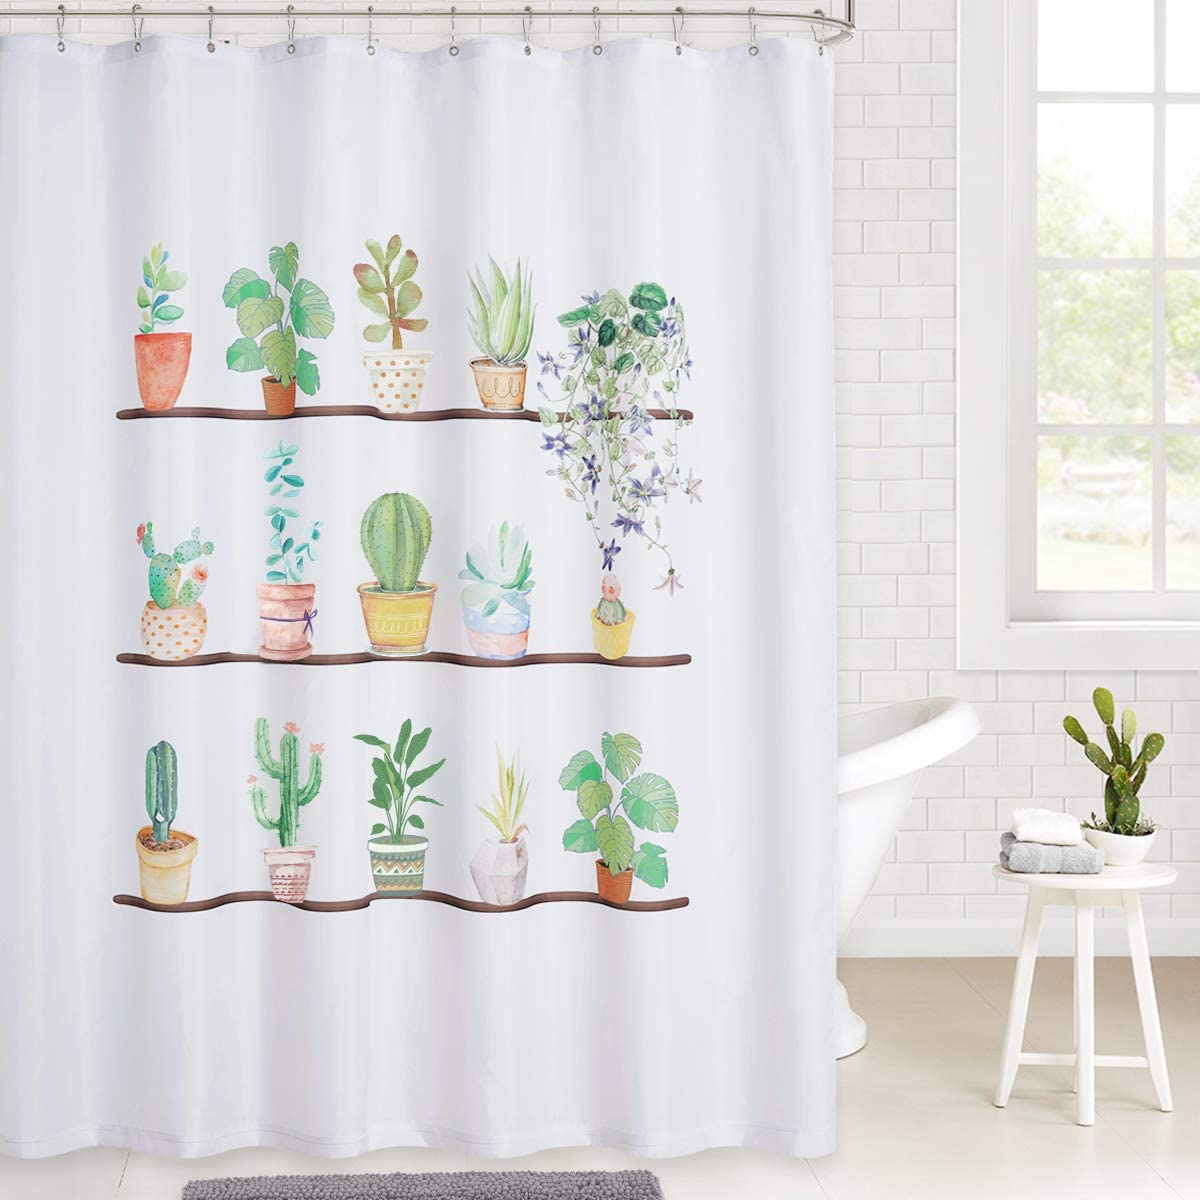 Bathroom Waterproof Fabric Shower Curtain Set Watercolor Potted of Plants Cactus